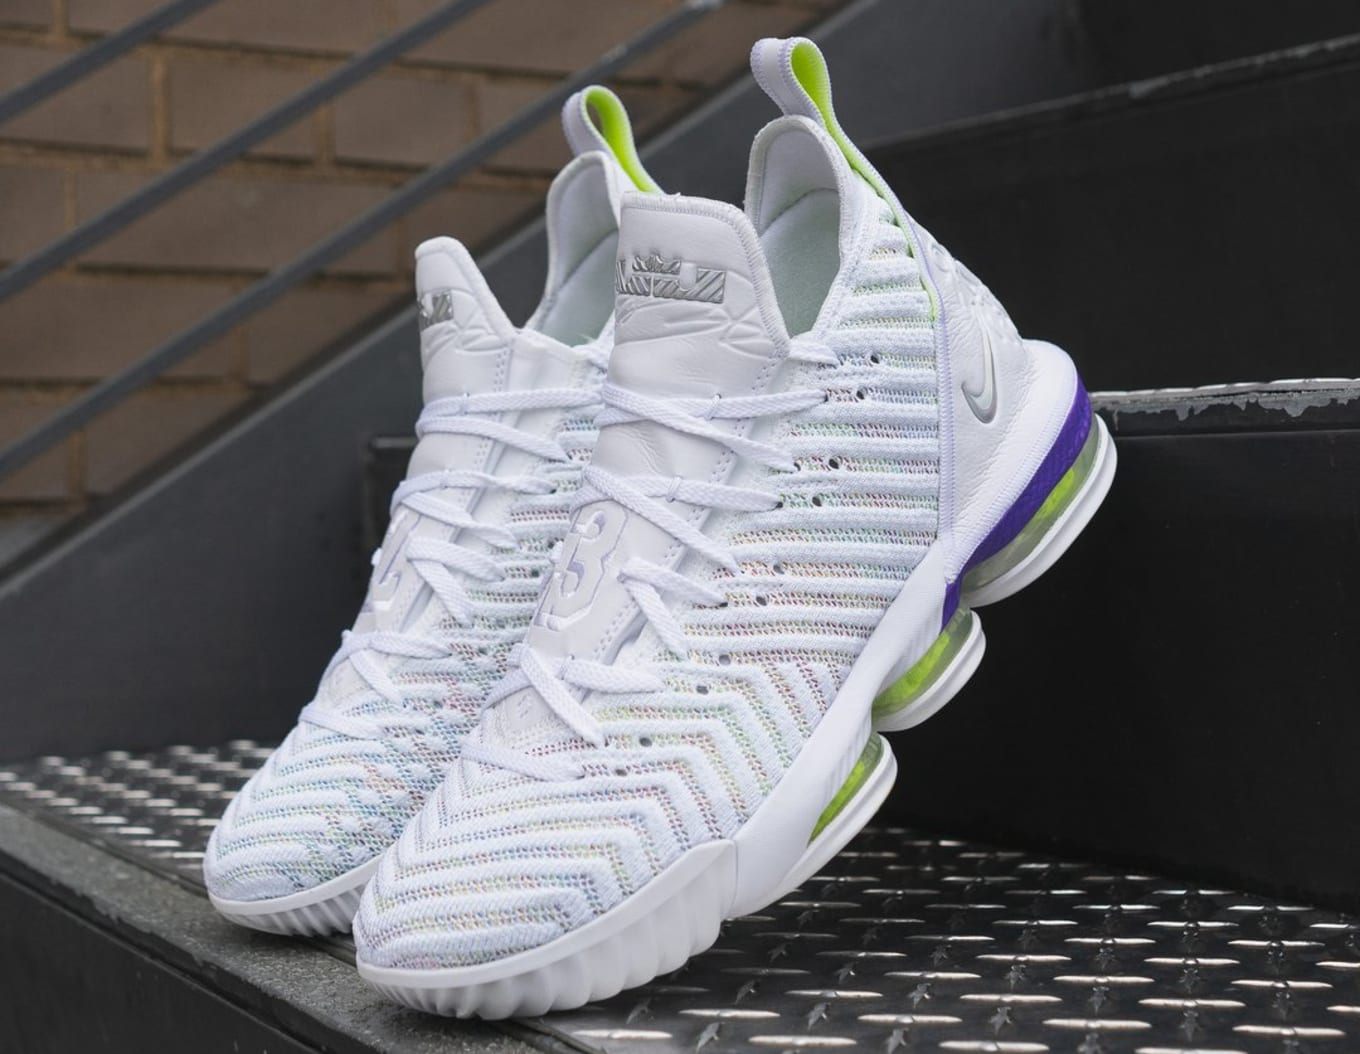 b1c307628347 Nike LeBron 16 White Multicolor-Hyper Grape-Volt AO2588-102 Release ...